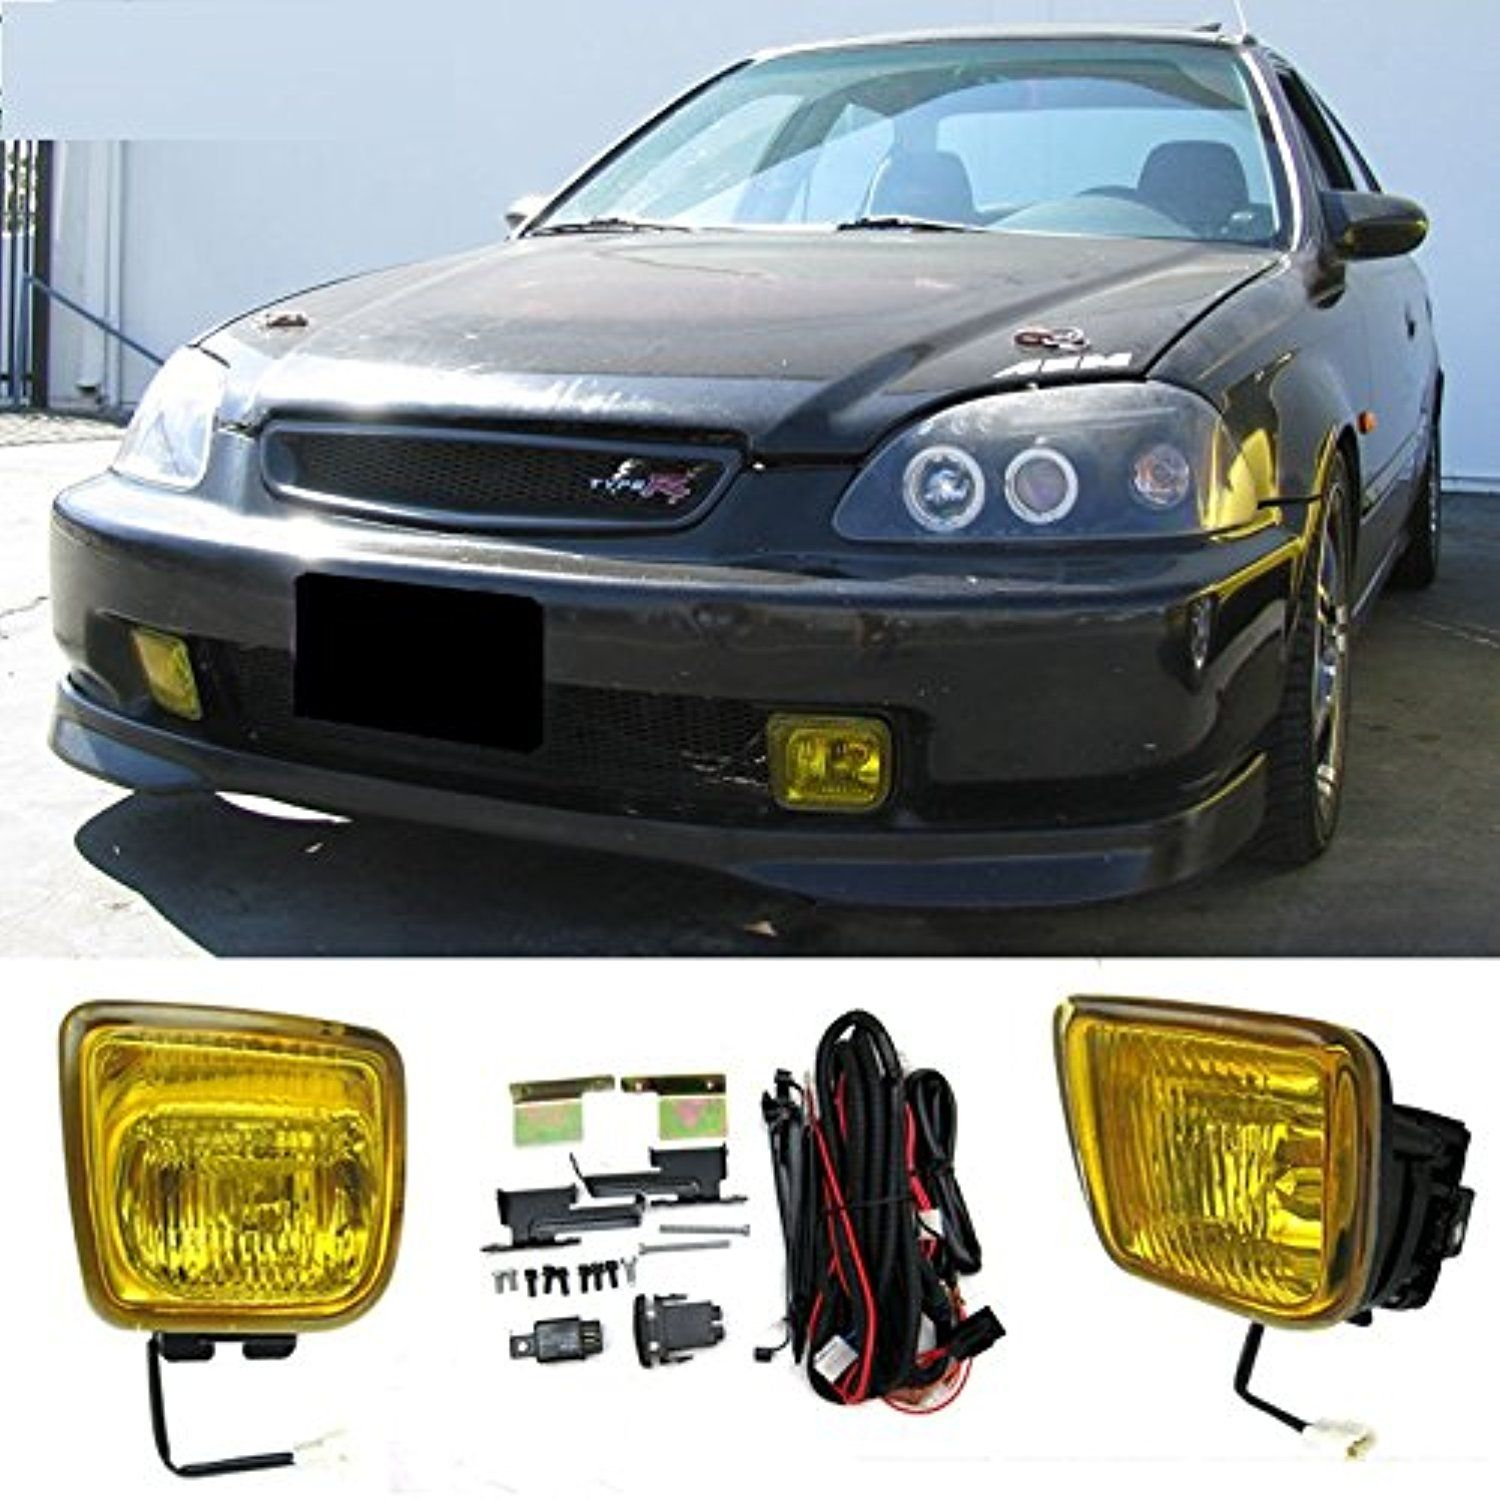 Cpw 1996 1997 1998 honda civic ek jdm yellow fog lights lamps switch wiring